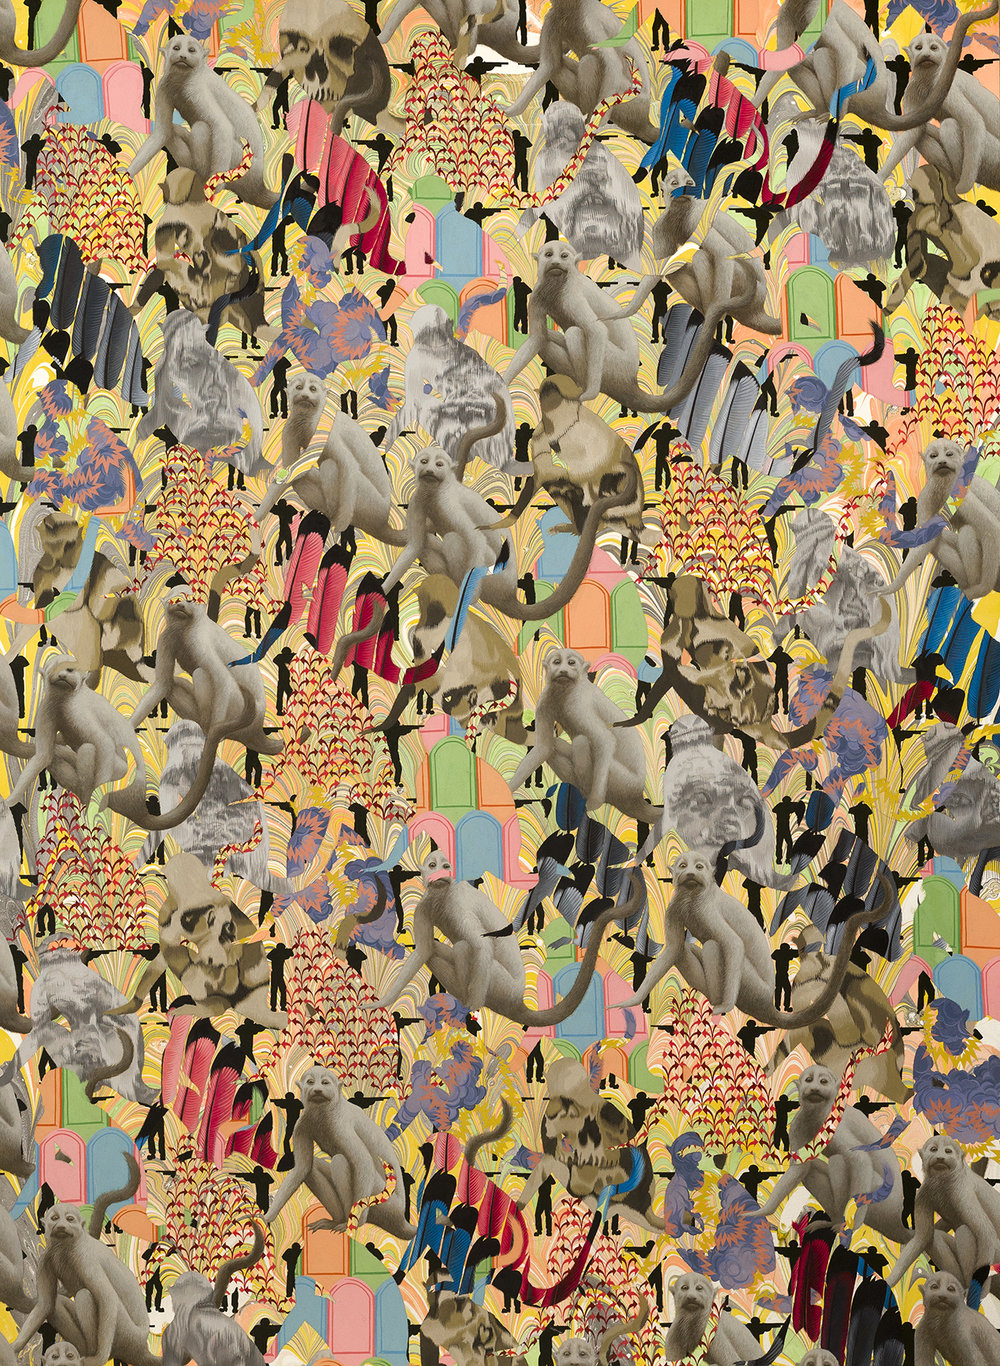 "Zoe Pettijohn Schade/ Crowd of Crowds: 100th Monkey/ 36"" x 49""/ 2017"